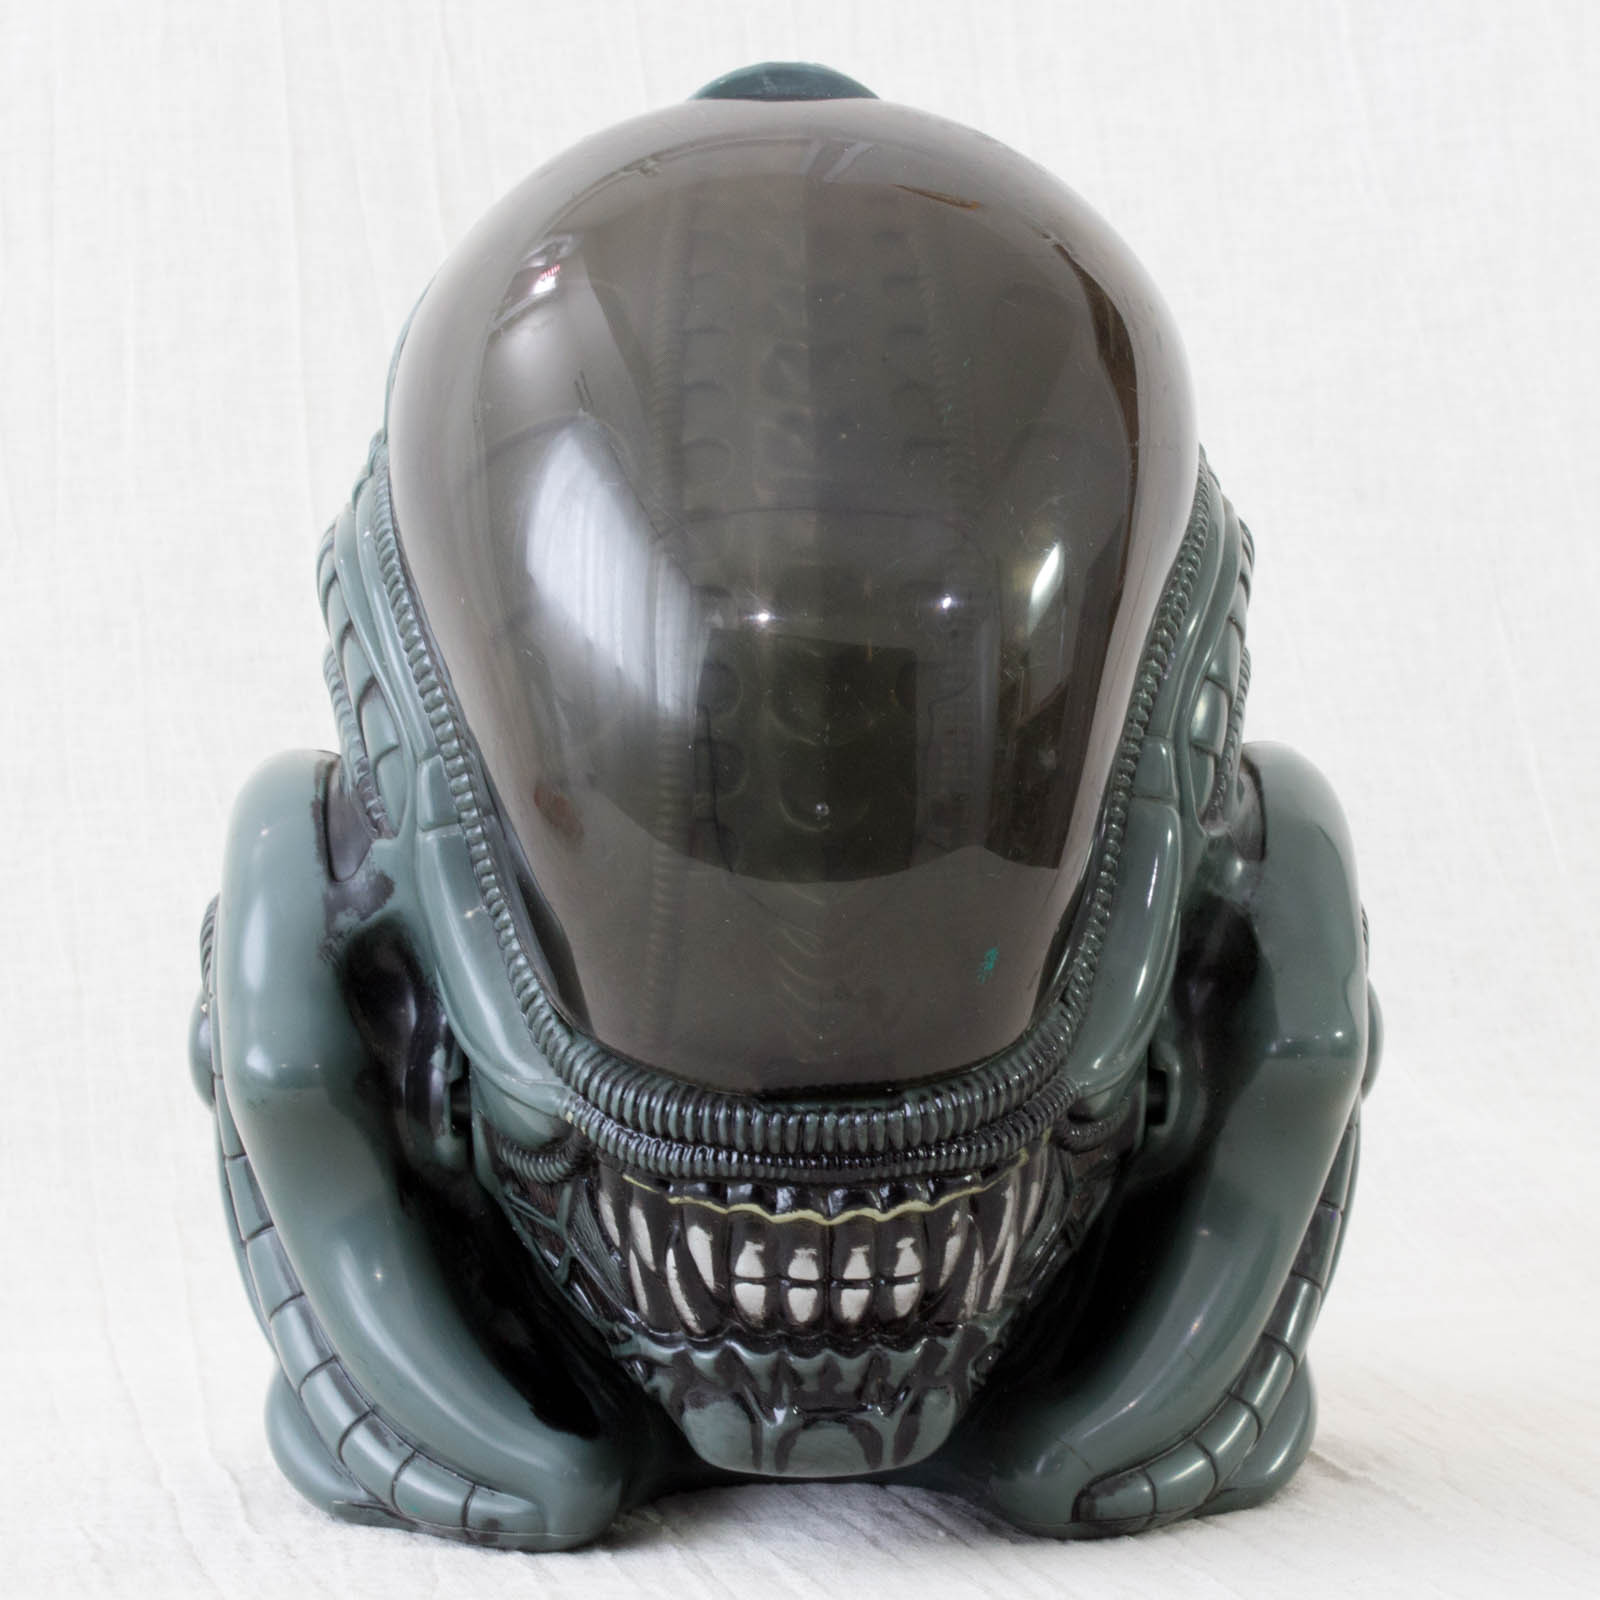 Retro ALIEN Head Figure Toy